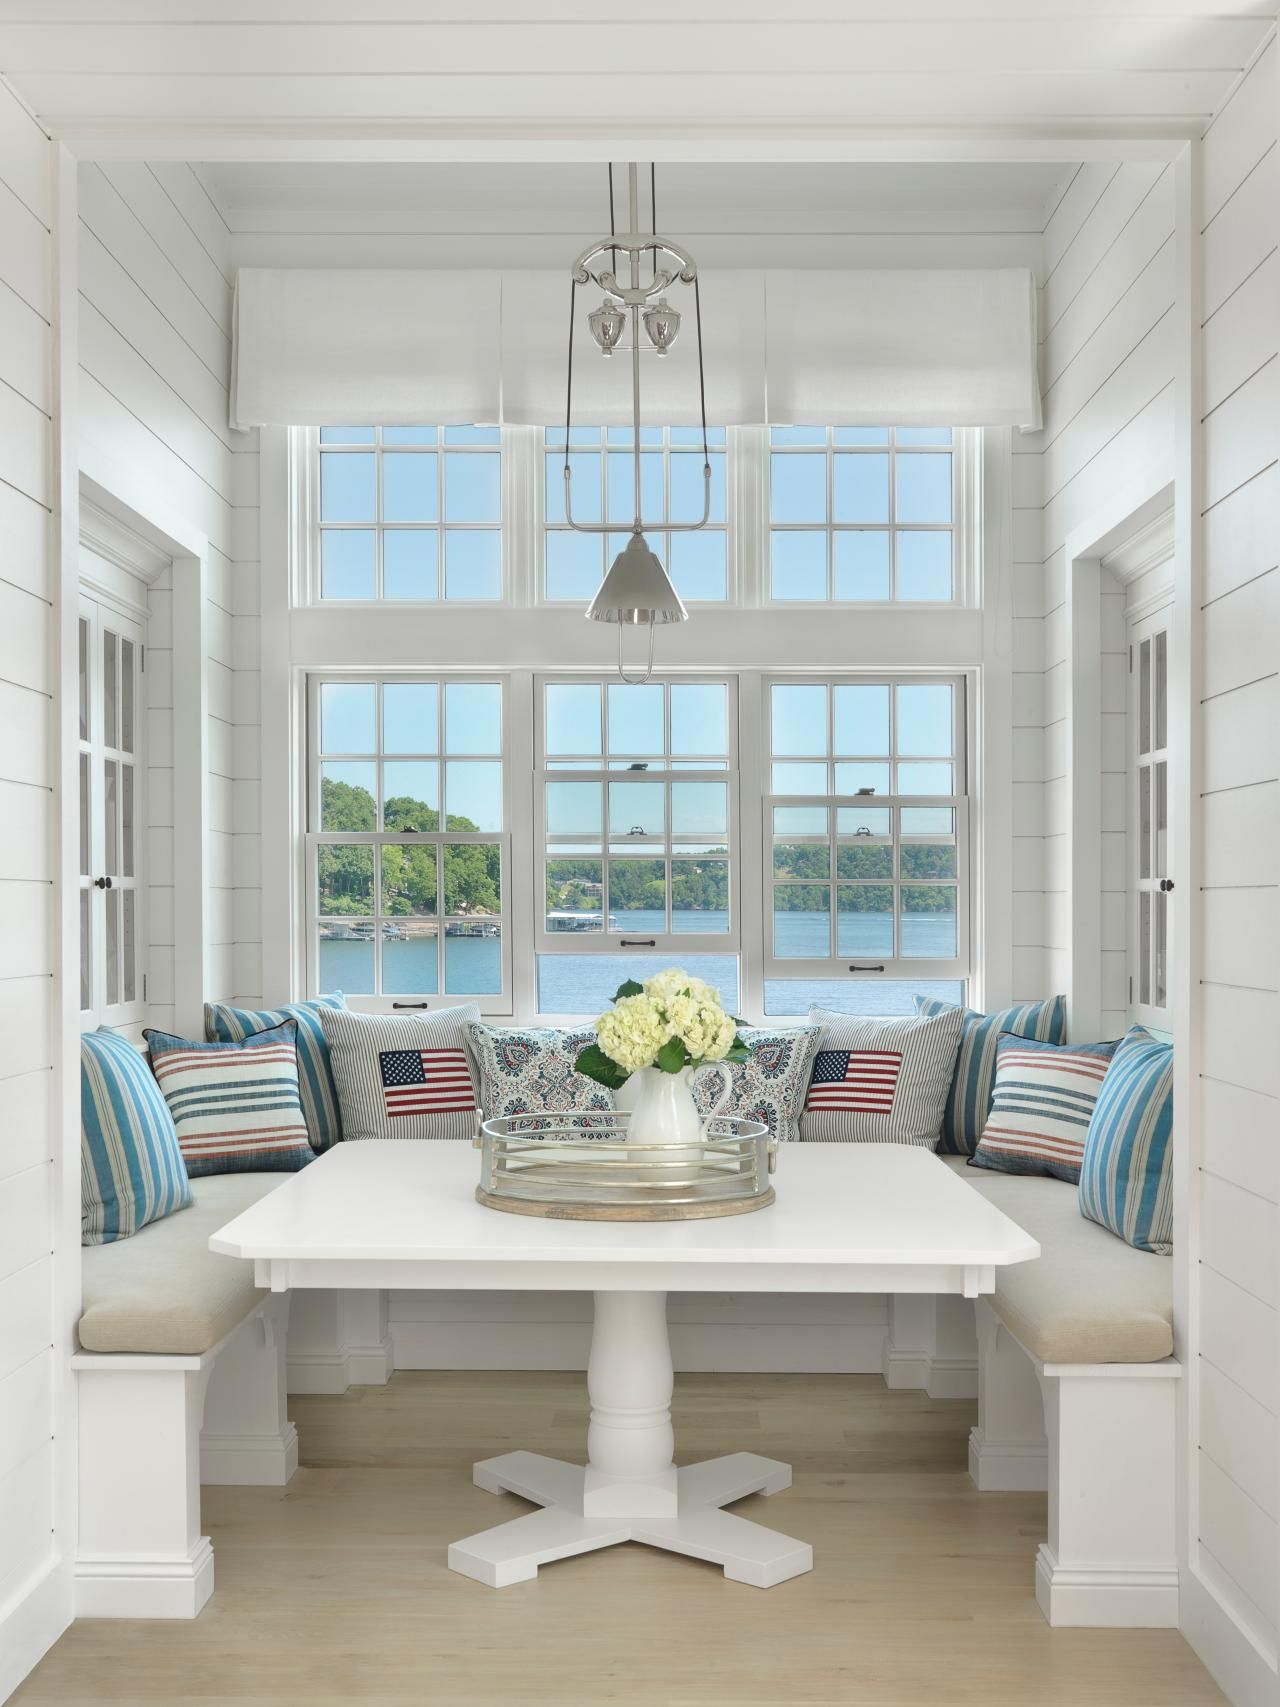 Cottage Style Kitchen Addition To A Cape Cod Style Home: From Beachfront Bungalows To Lakeside Getaways, Every Day Feels Like A Vacation In These